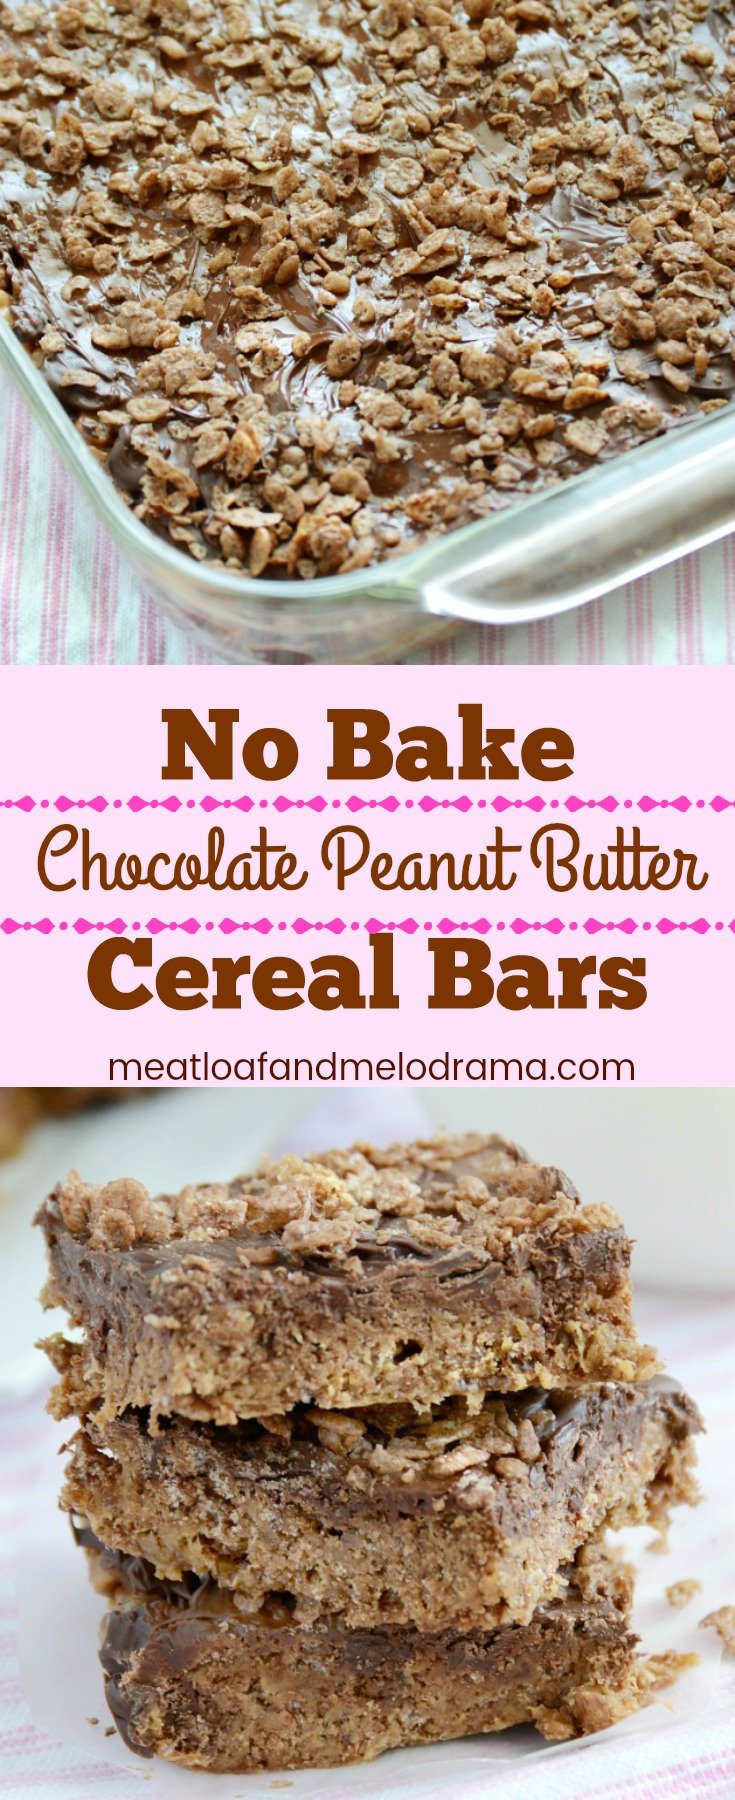 No Bake Chocolate Peanut Butter Cereal Bars - A quick and easy sweet treat made without marshmallows